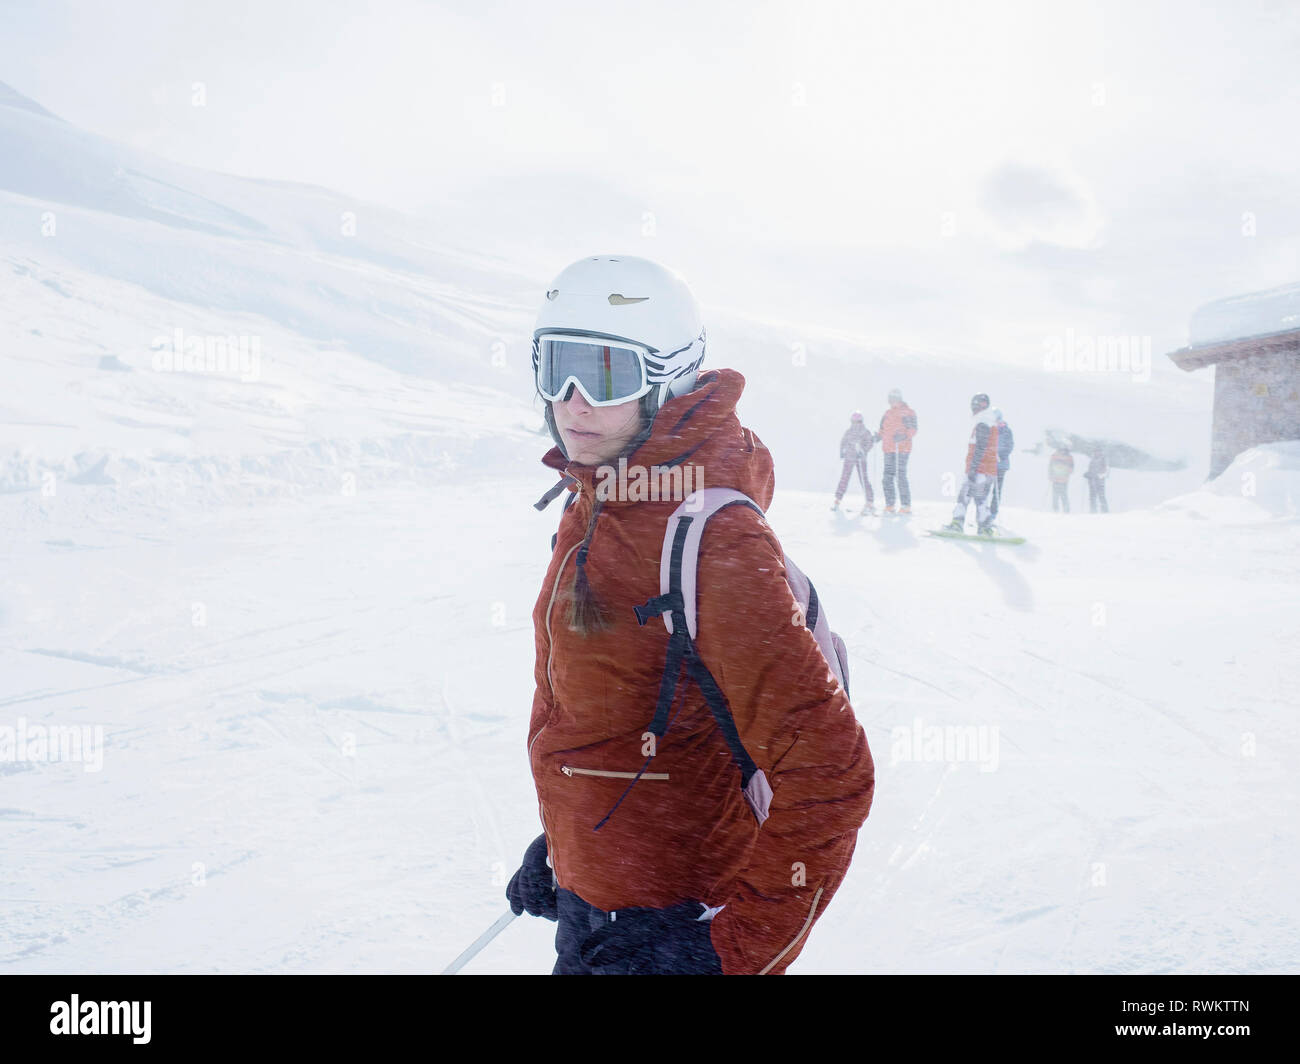 Young female skier wearing helmet and ski goggles on ski slope,  Alpe Ciamporino, Piemonte, Italy - Stock Image